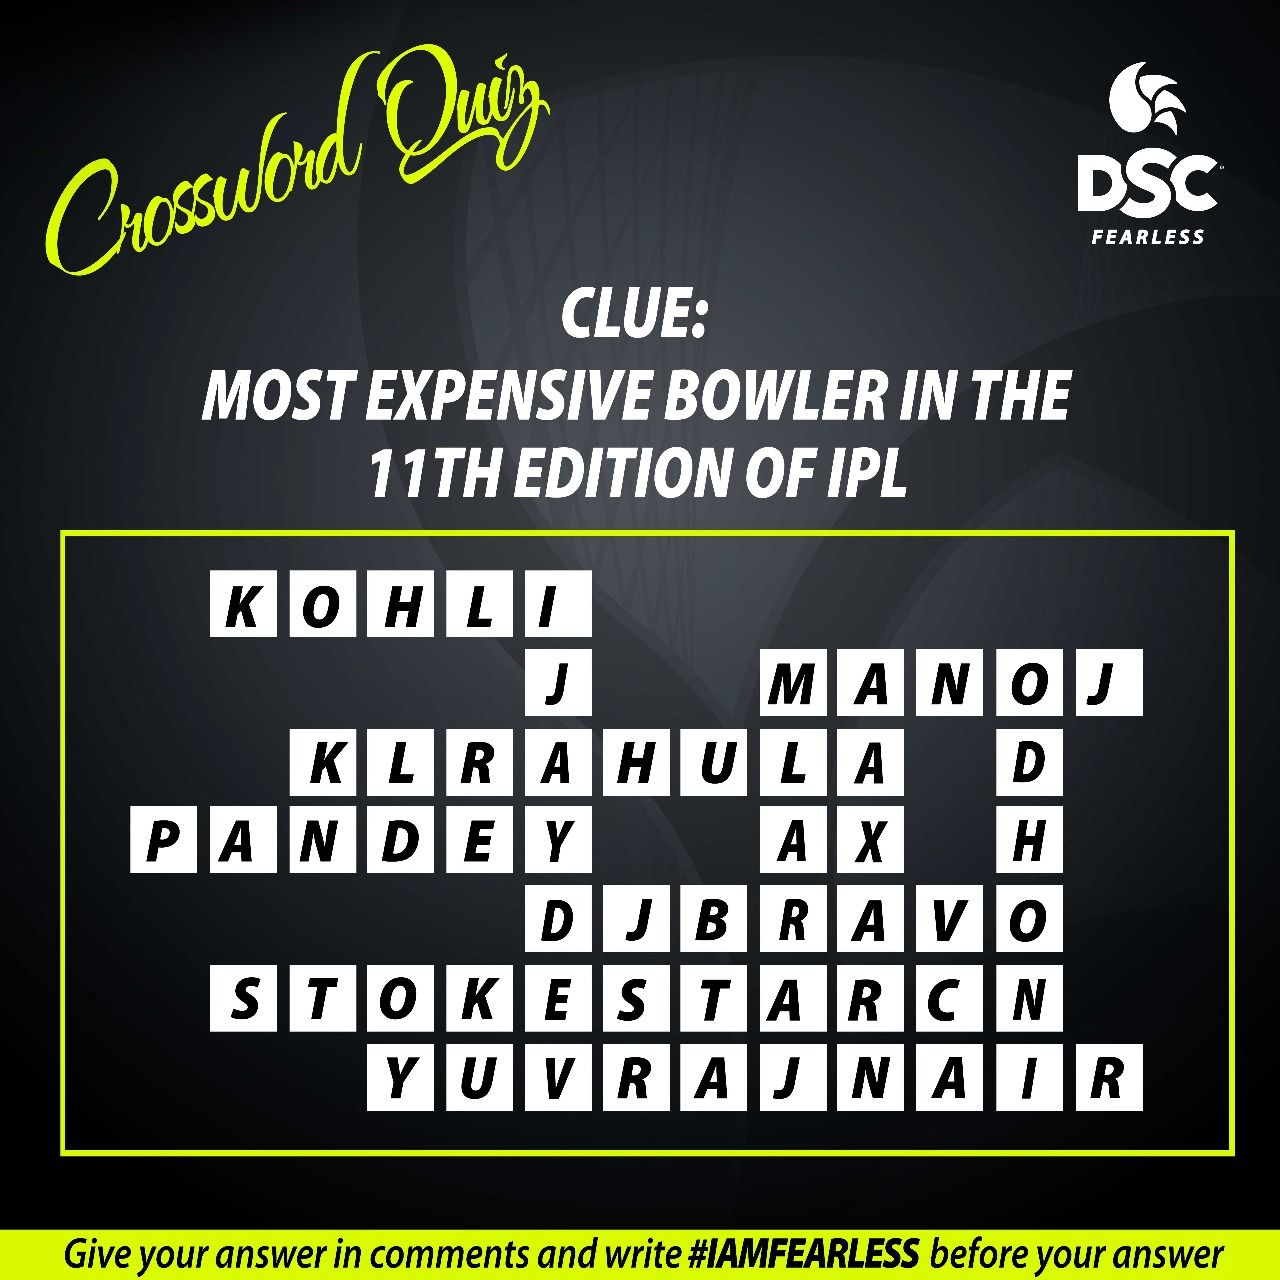 Funtime Solve The Crossword Clue Most Expensive Bowler In The